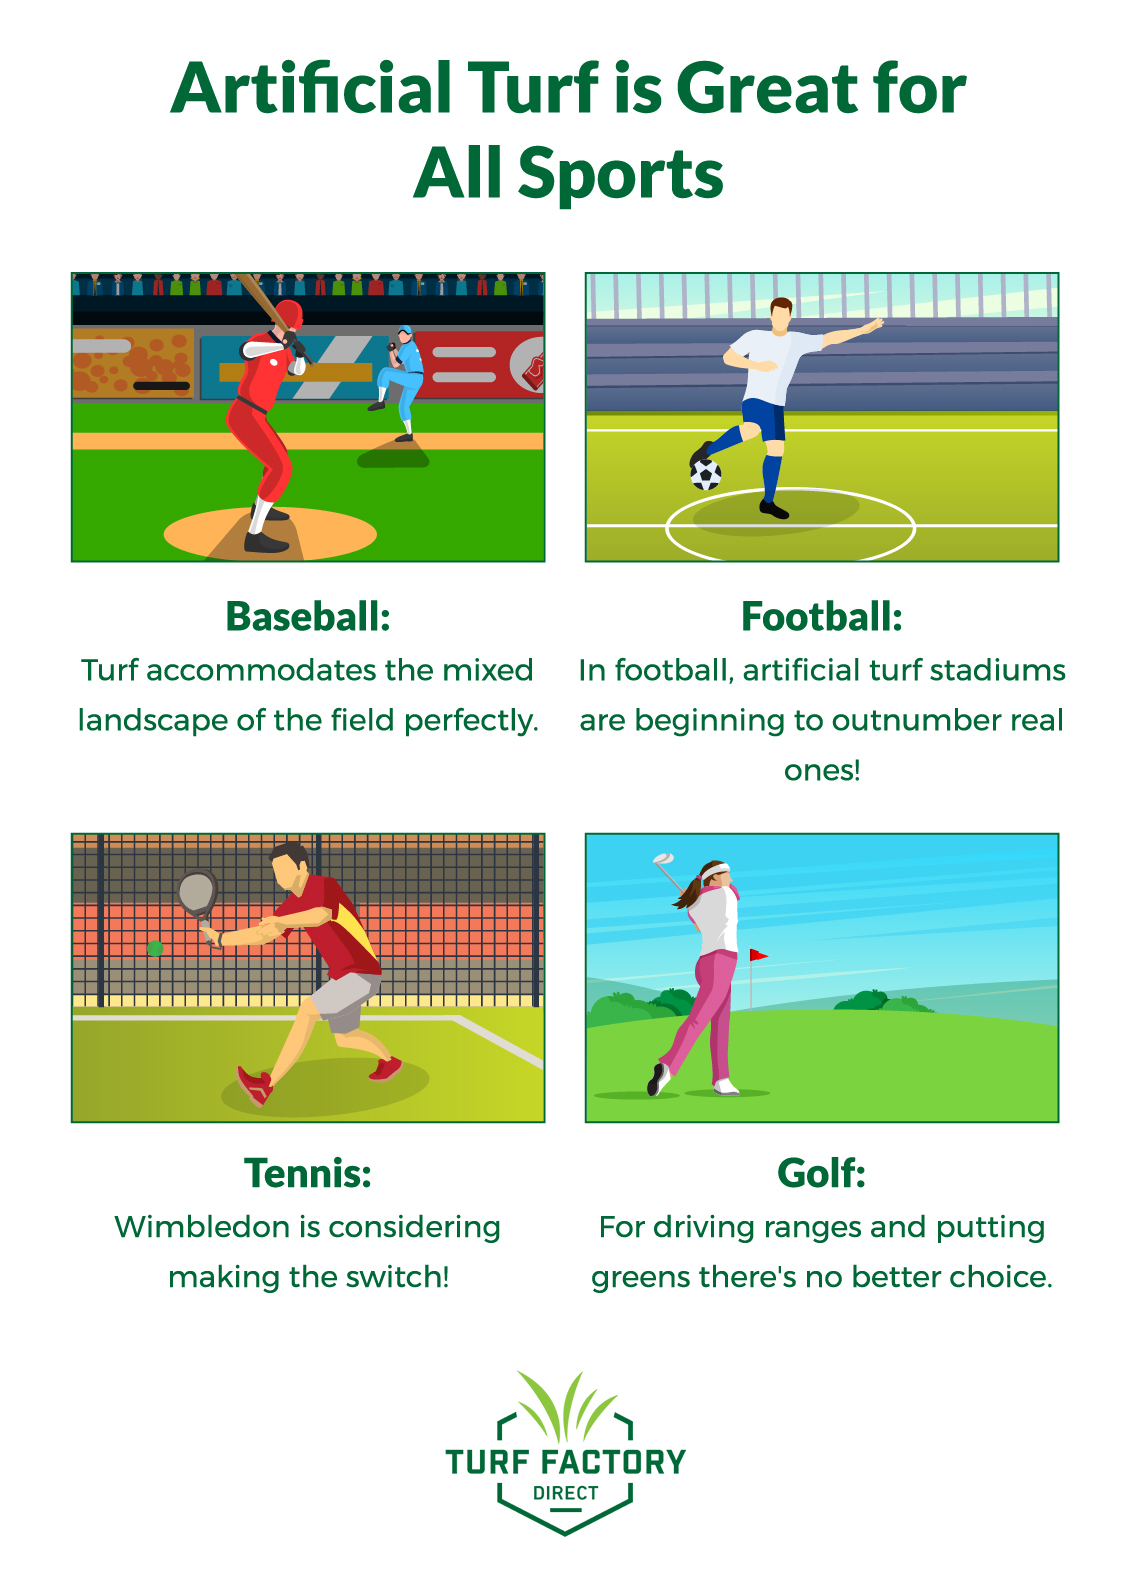 Whether you're playing baseball, football, soccer or golf, artificial turf has many advantages over normal grass.